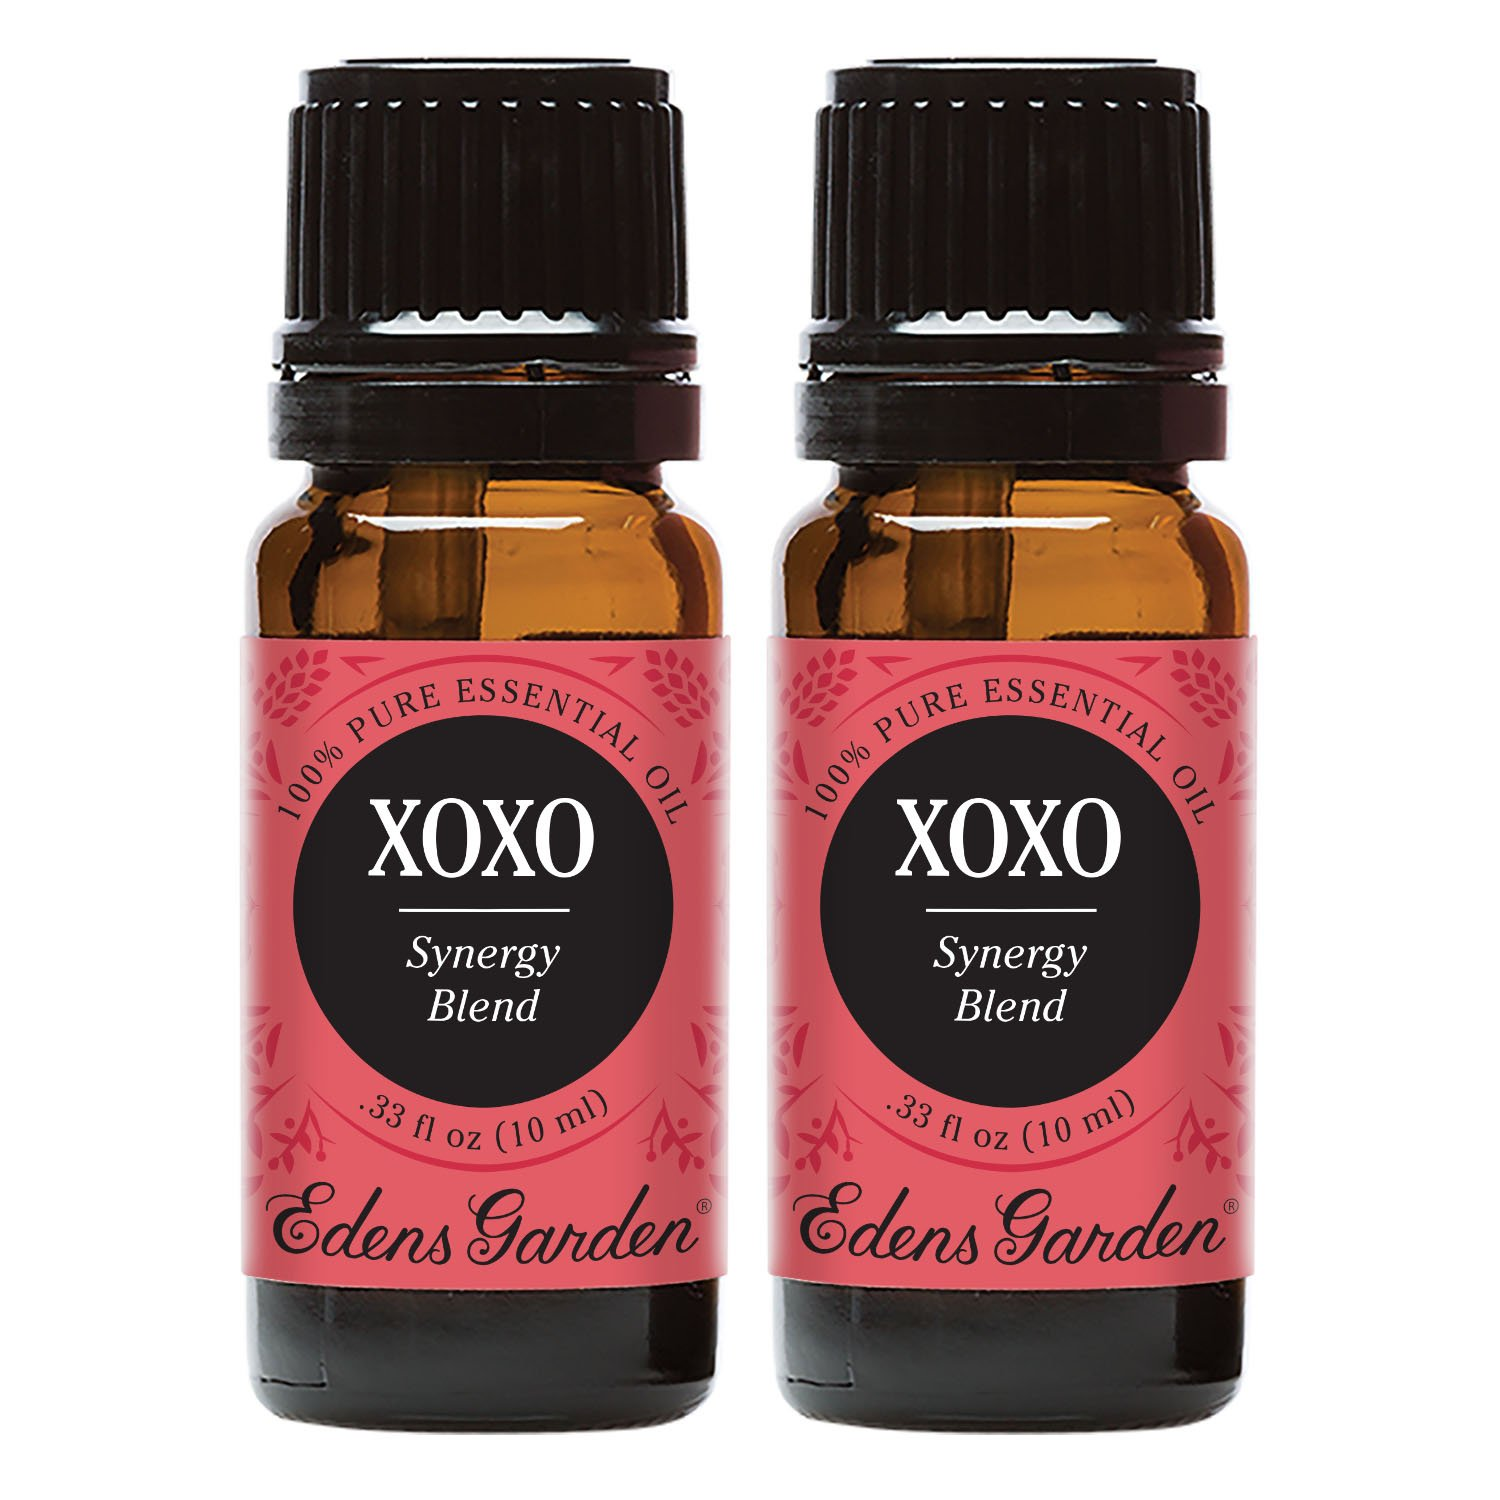 Edens Garden XOXO Value Pack Synergy Blend 100% Pure Undiluted Therapeutic Grade GC/MS Certified Essential Oil (Cardamom, Cinnamon Bark, Ginger, Clove Bud, Sandalwood, Jasmine, Vanilla)